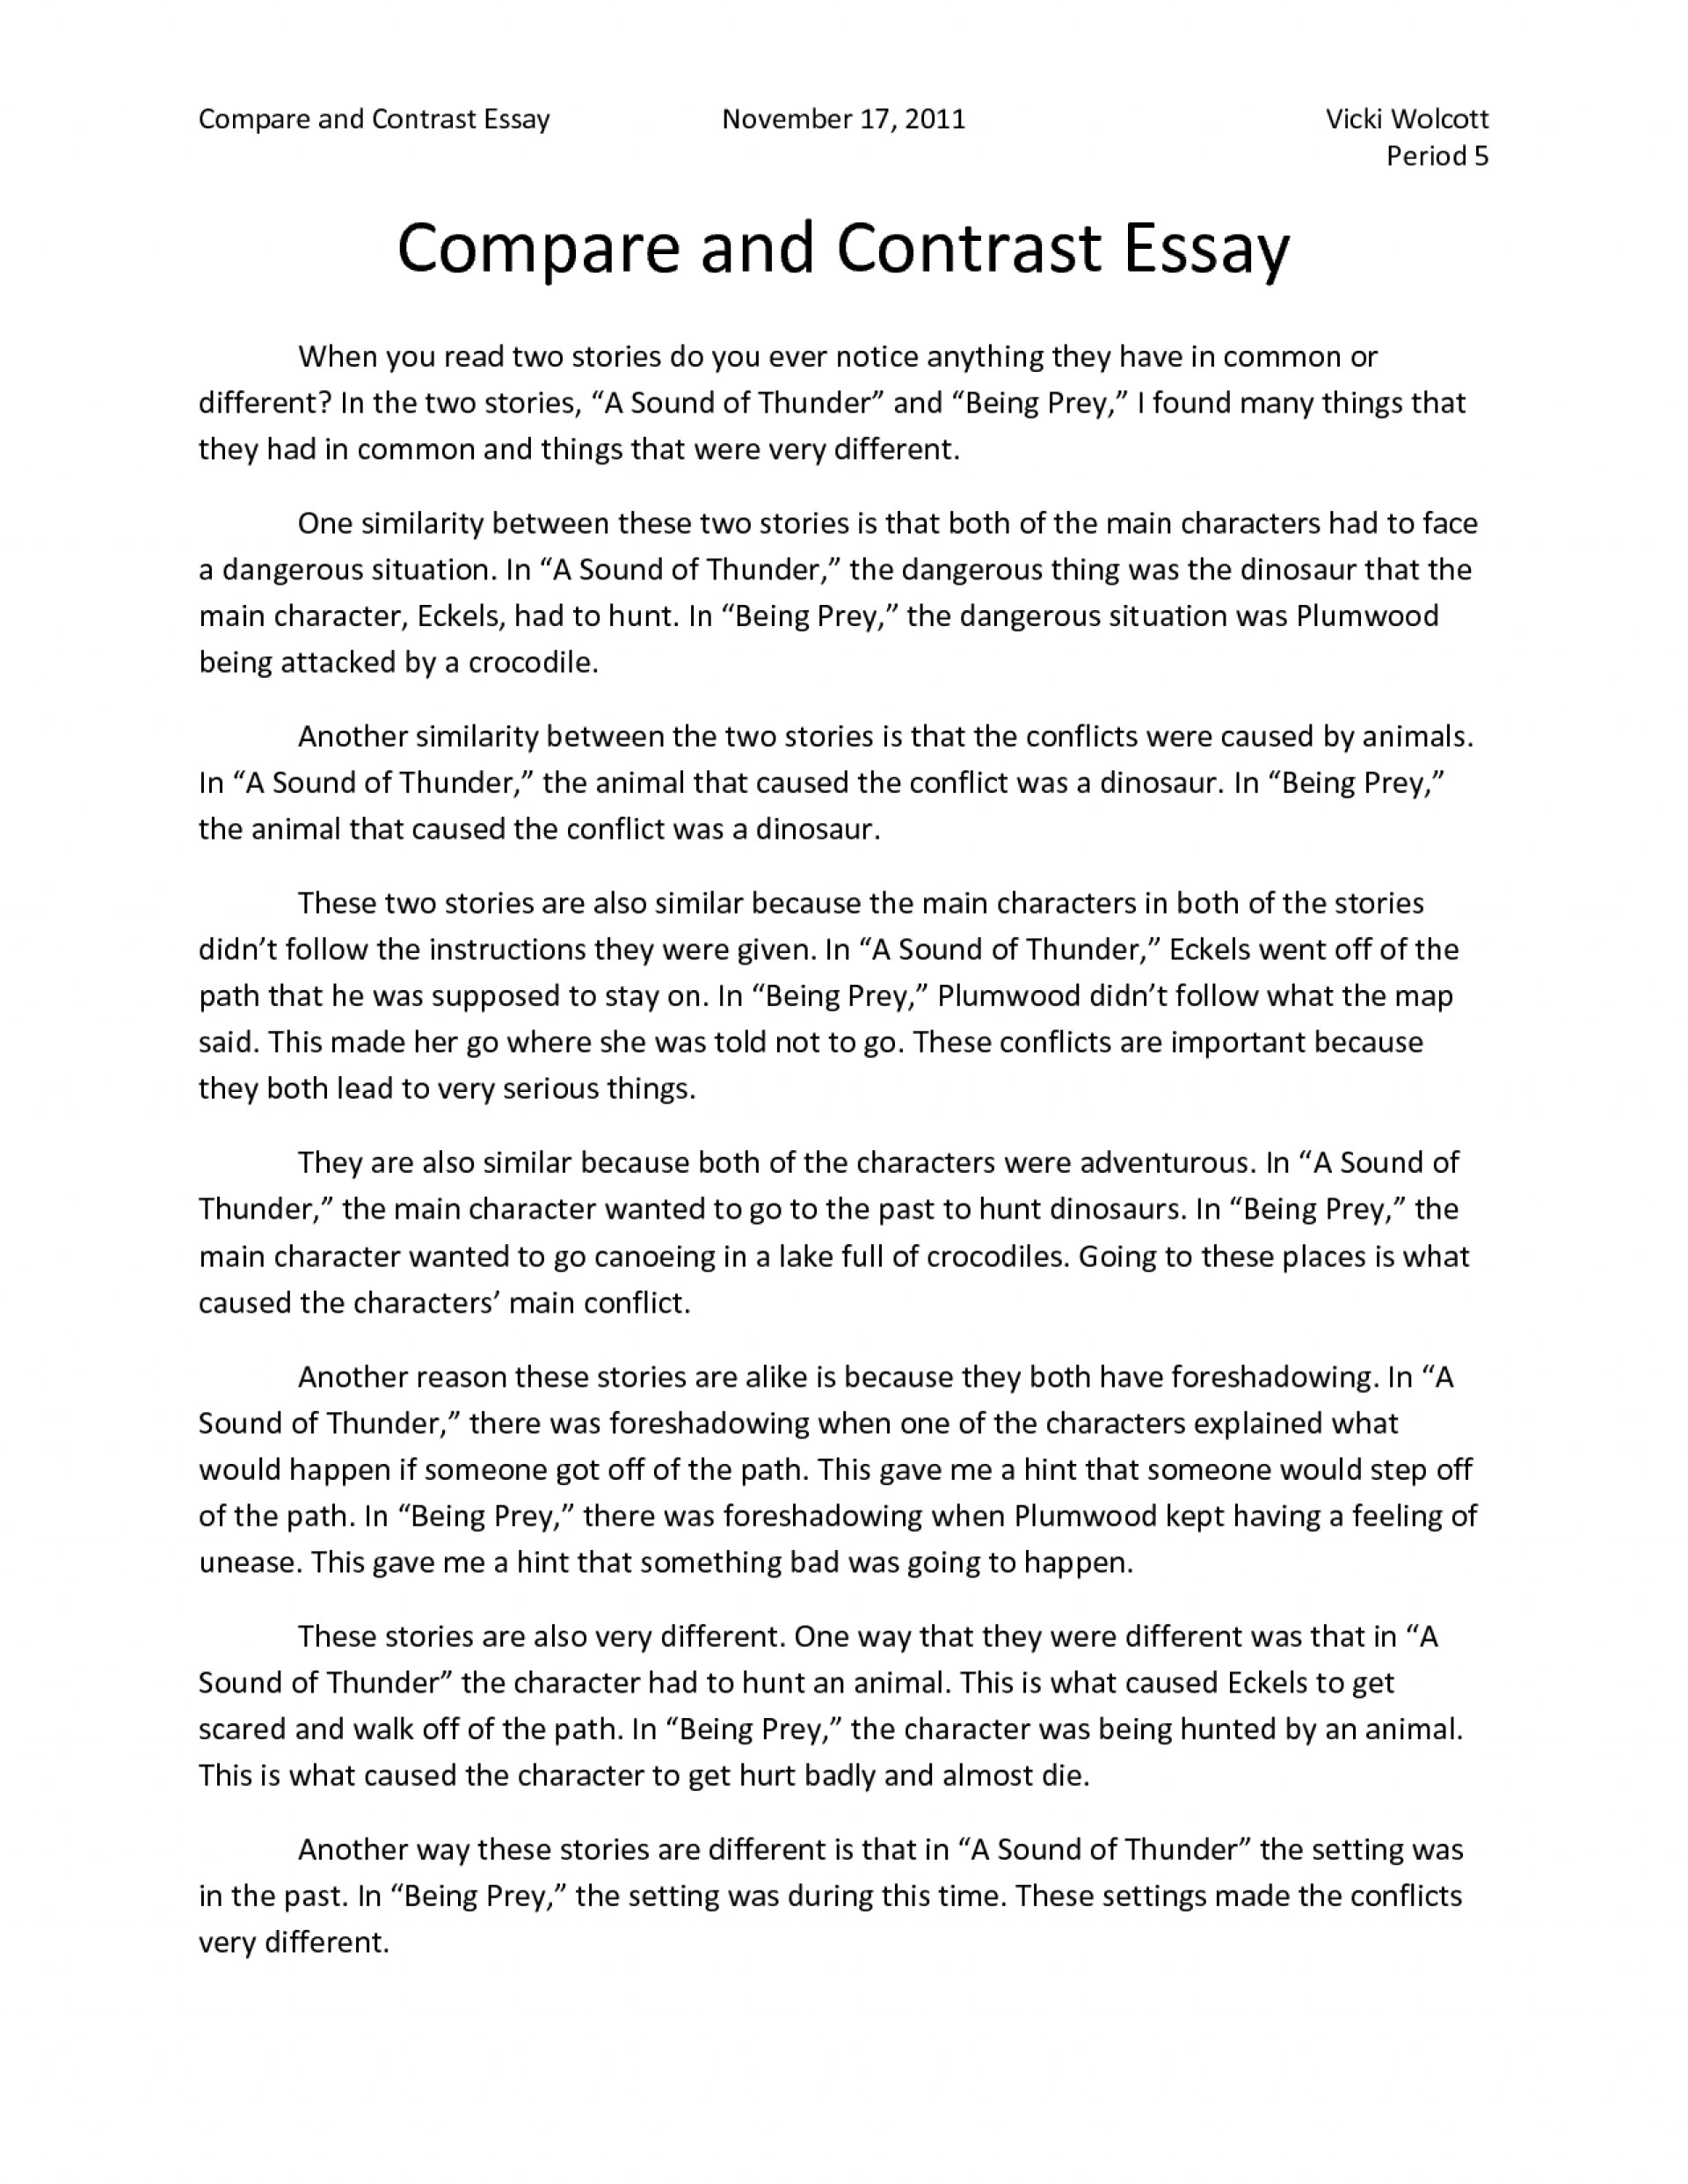 003 Perfect Essays Compare And Contrast Essay Introduction Example How To Write College Striking Comparison Examples Free Pdf 4th Grade For 5th 1920